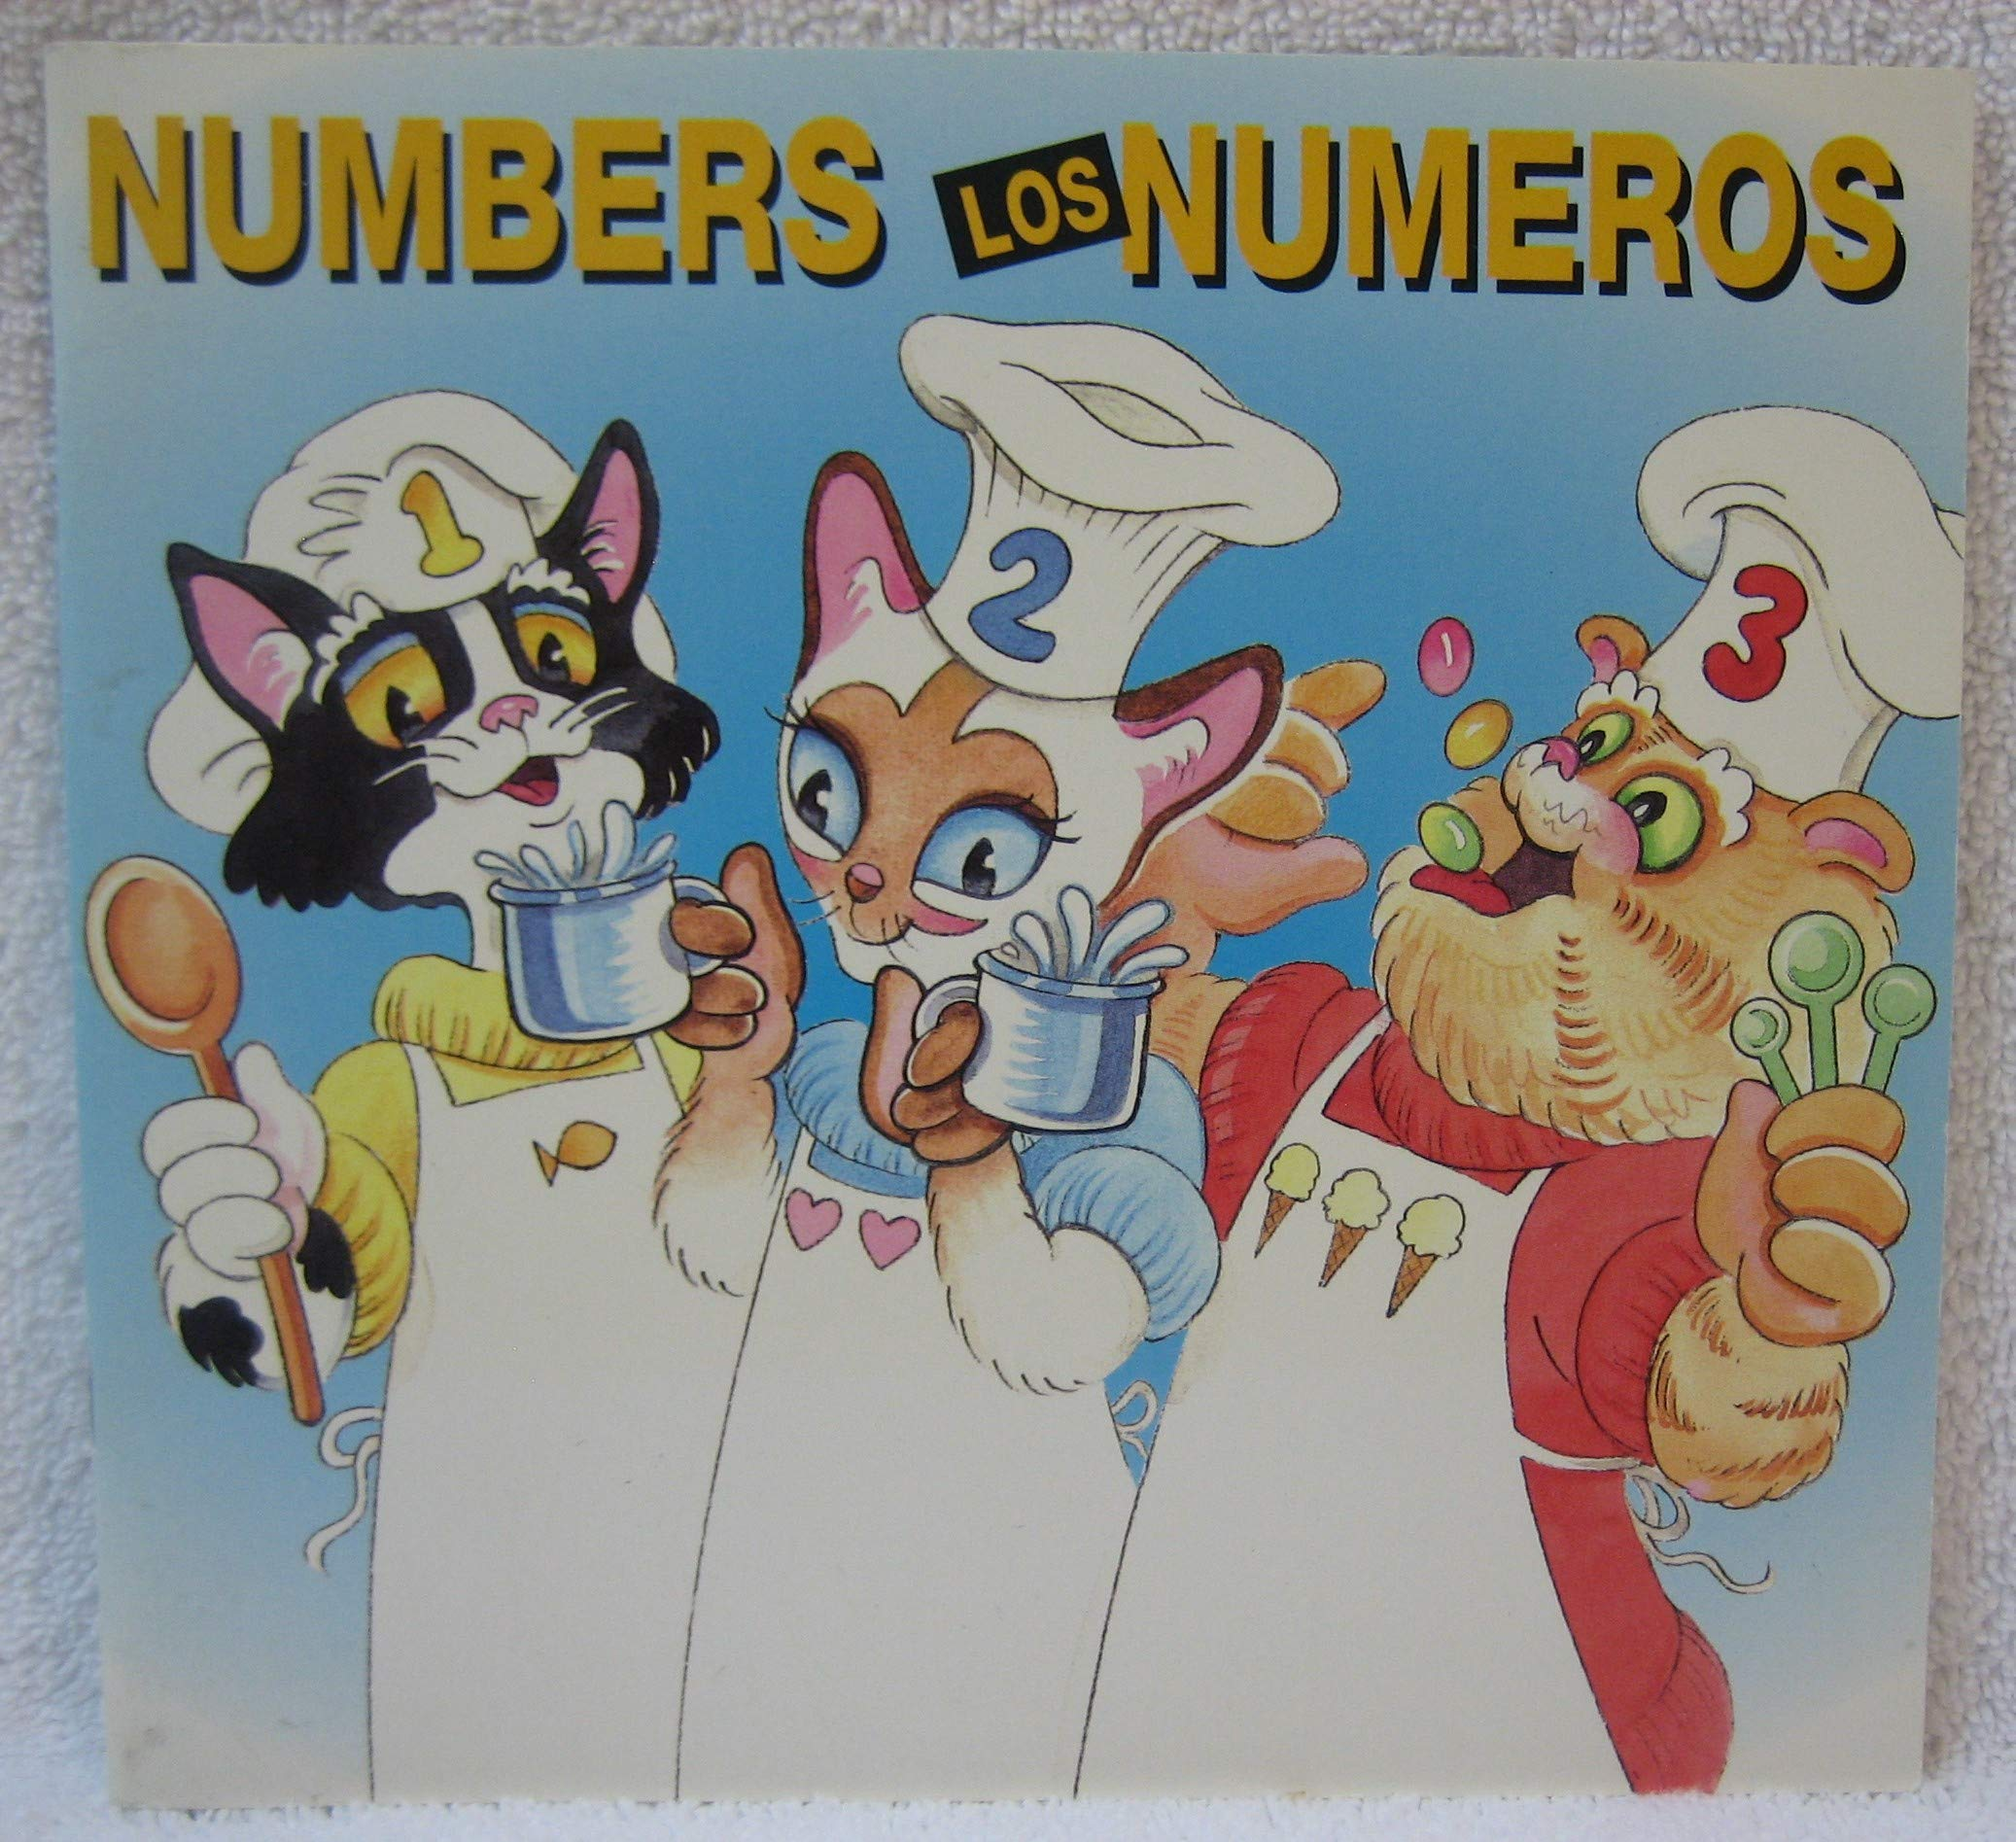 Crazy Cats Numbers Los Gatos Locos Los Numeros (Spanish and English Edition) Paperback – Box set, July 1, 1998